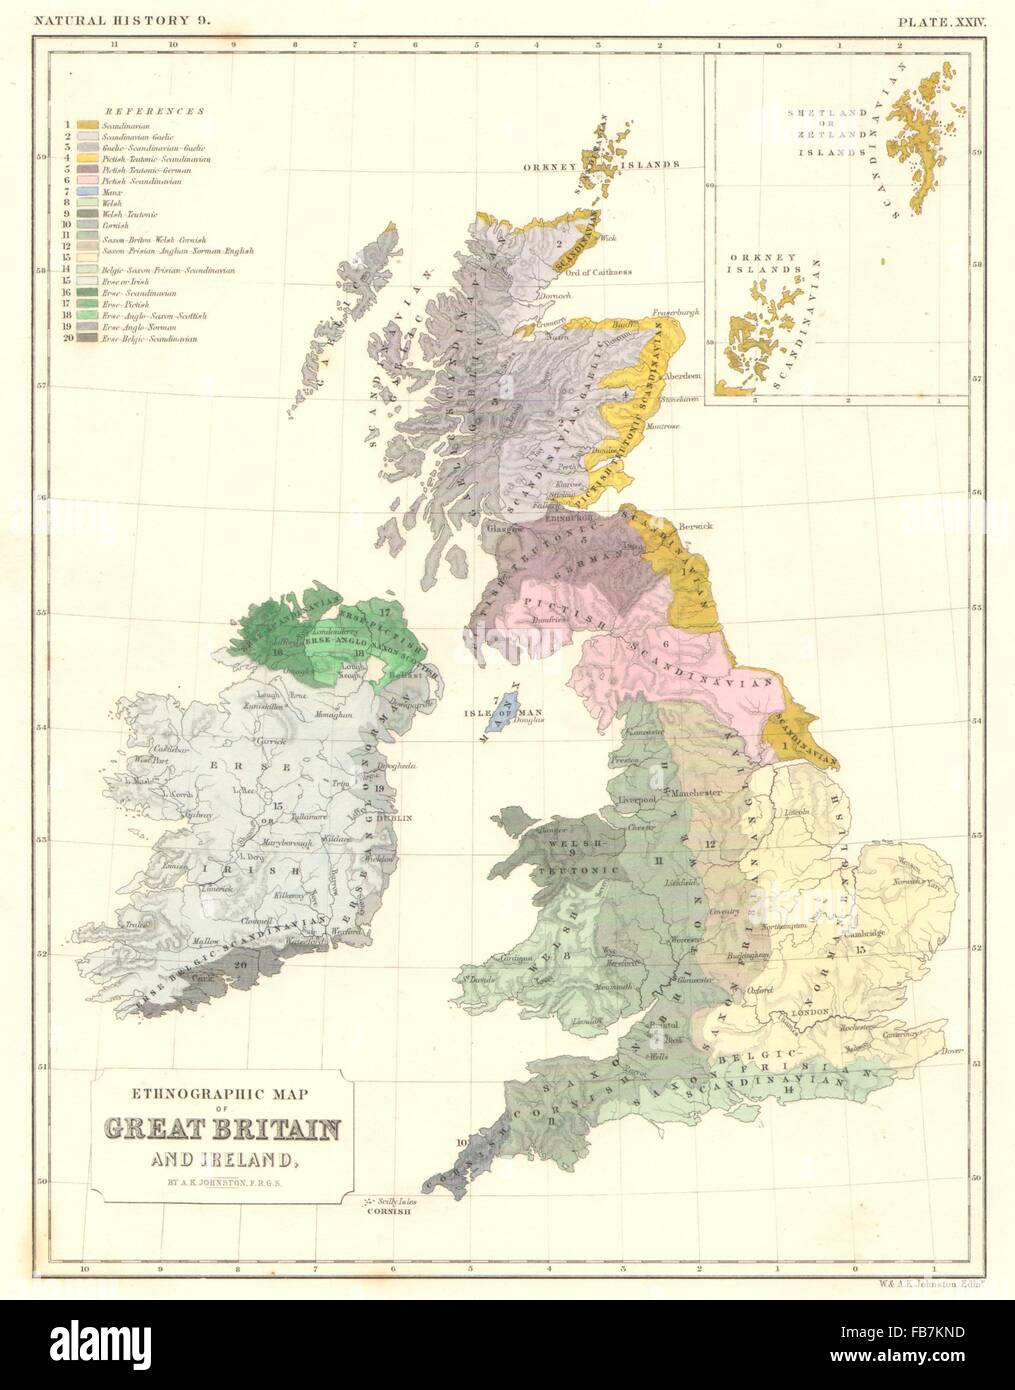 Britain And Ireland Map.Uk Ethnographic Map Of Great Britain And Ireland 1850 Stock Photo